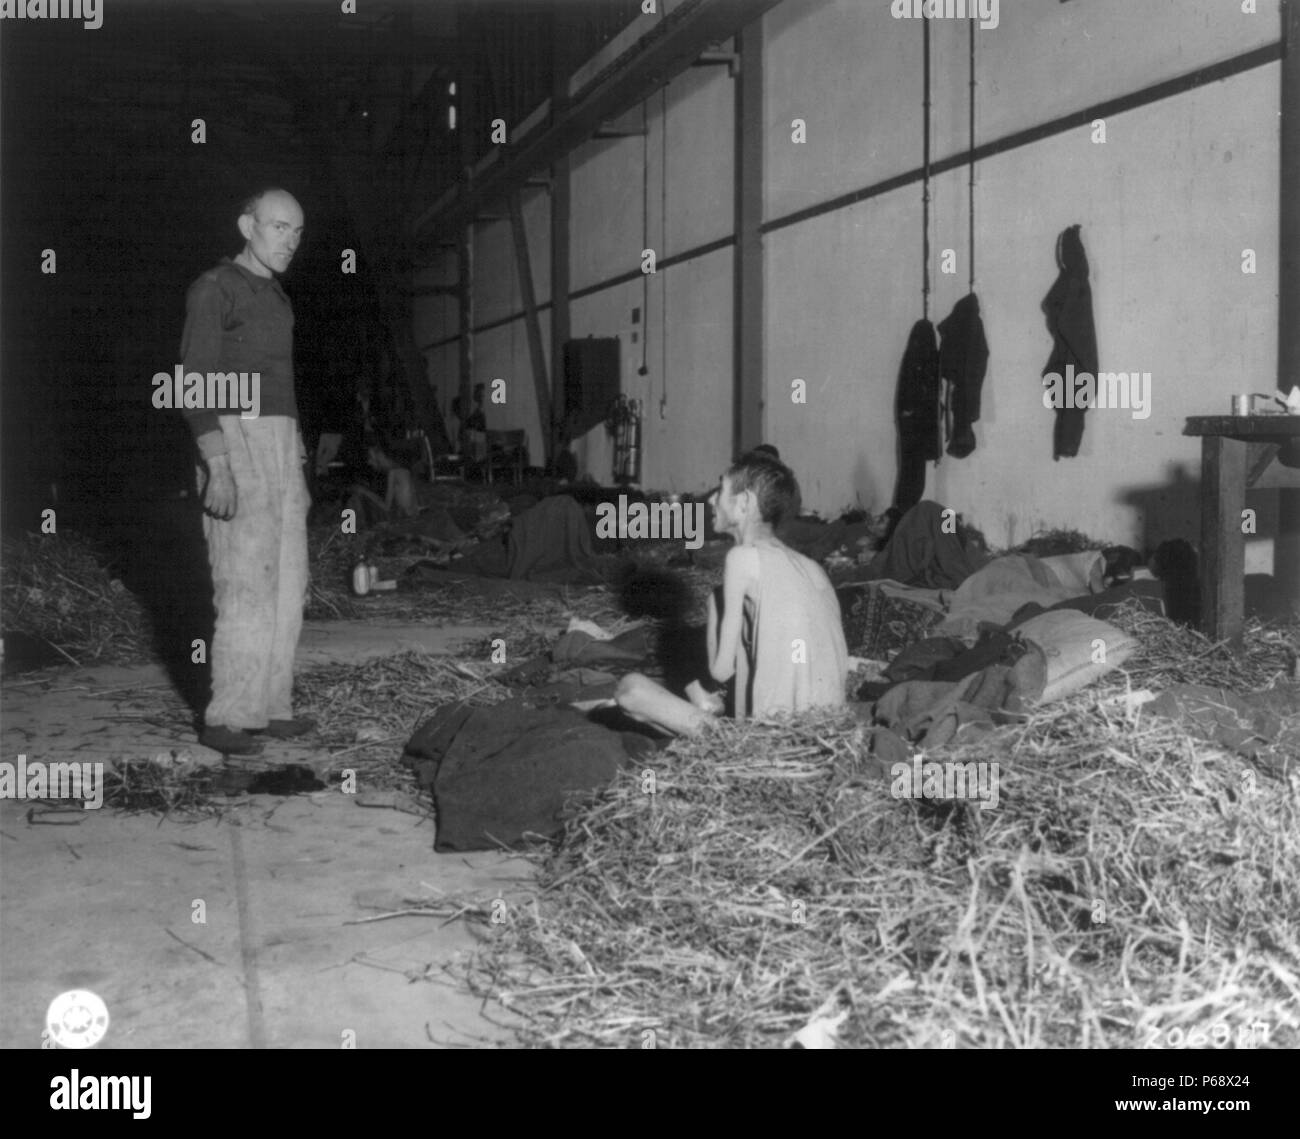 What happened during the liberation of the concentration camps. Austria 1945 (Tin)